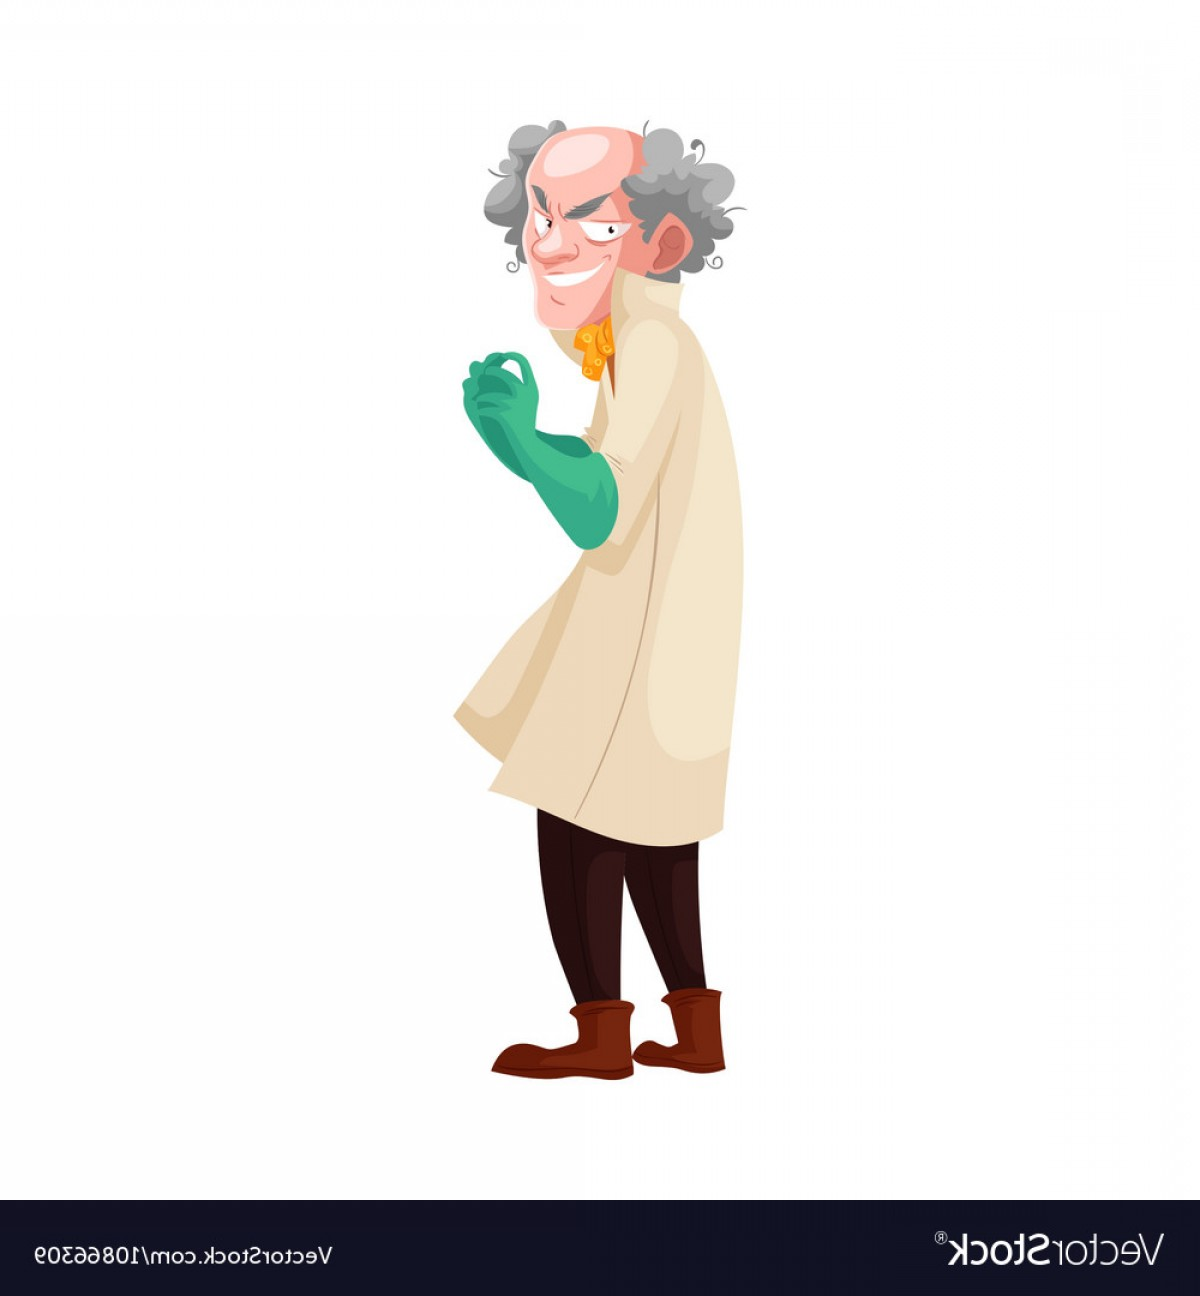 Lab Coat Cartoon Vector: Mad Professor In Lab Coat And Green Rubber Gloves Vector